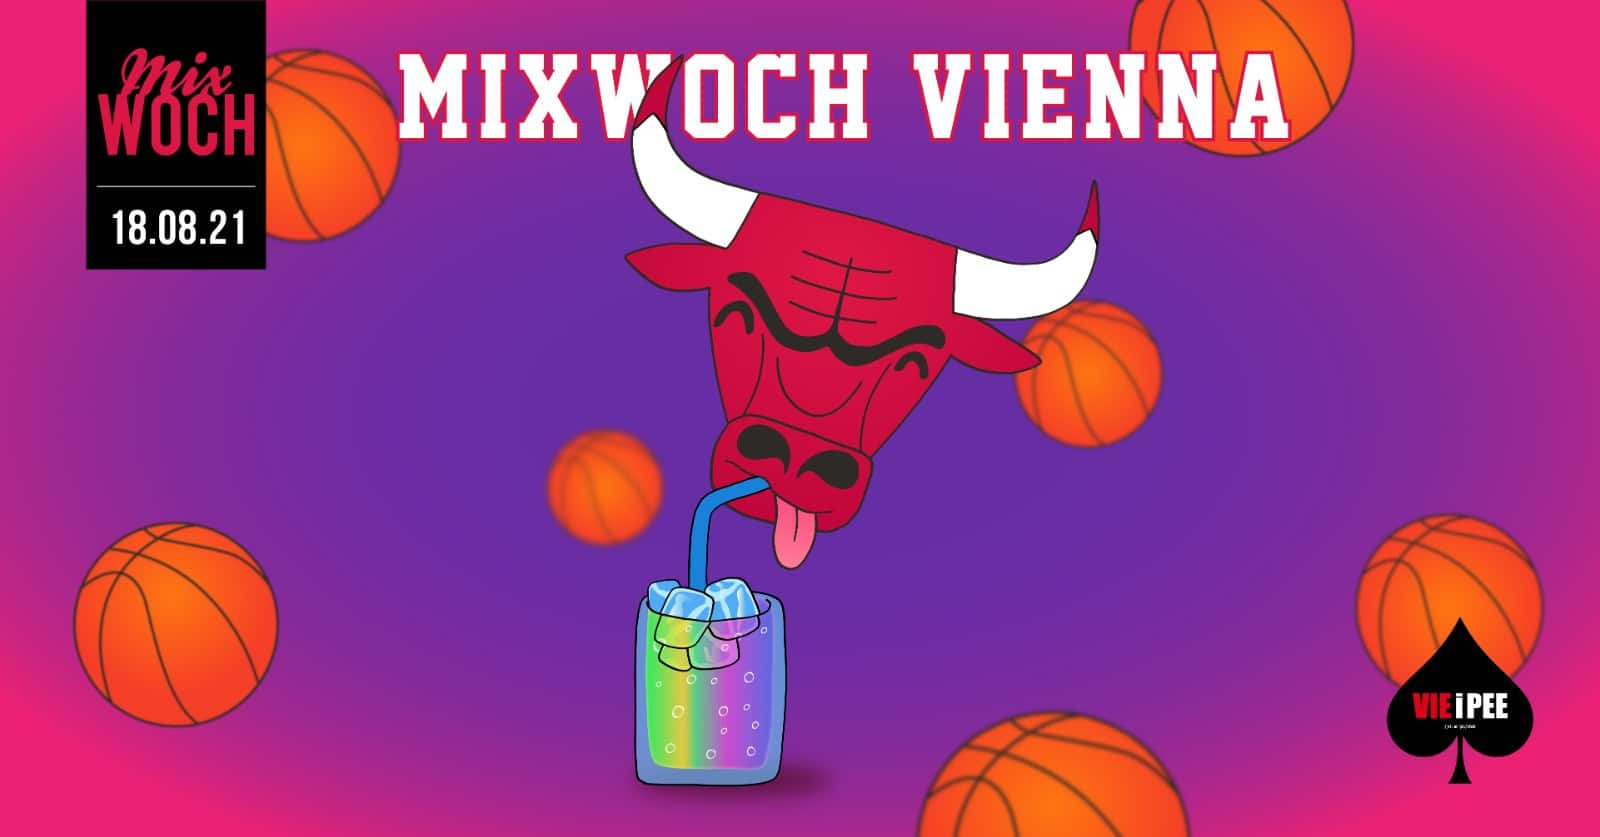 Events Wien: Mixwoch – Any given Wednesday at VIEiPEE